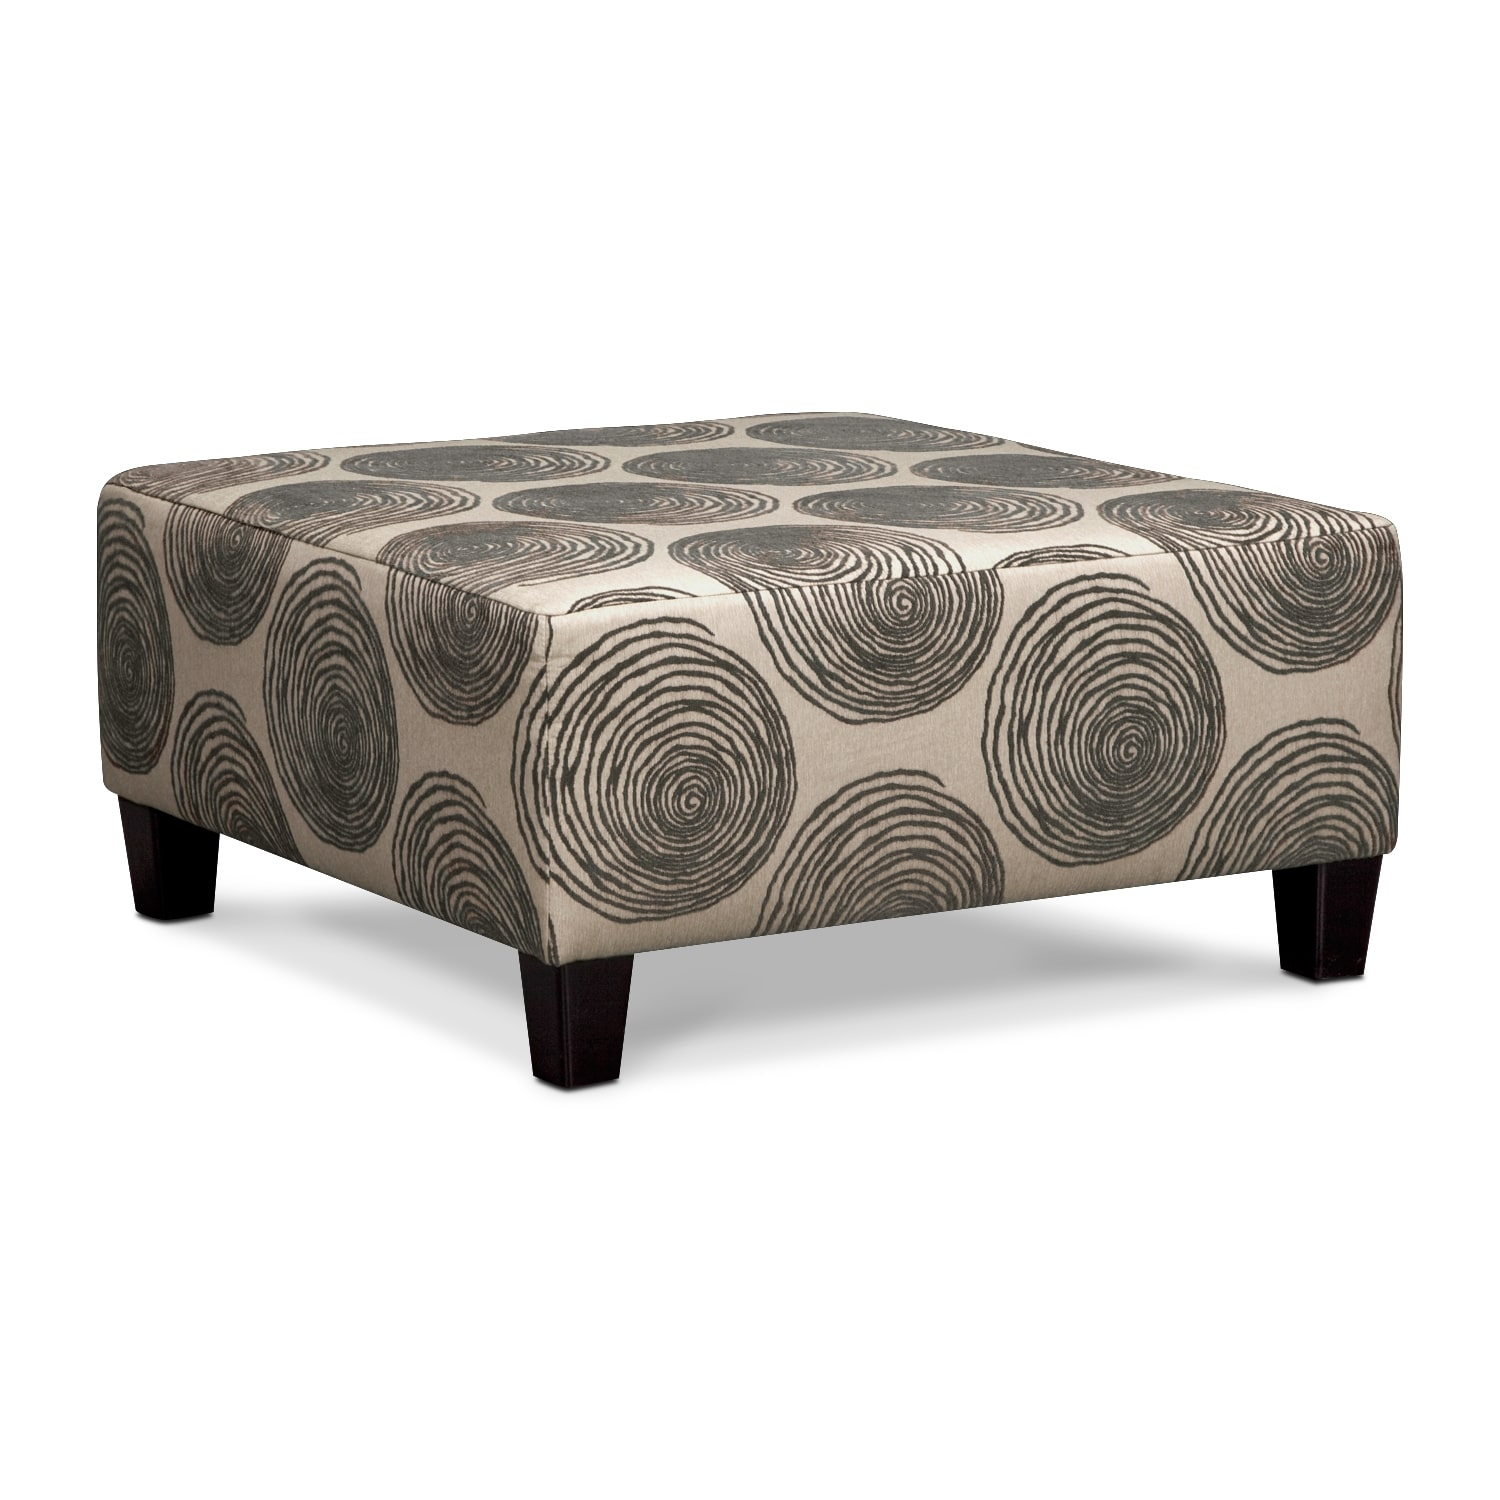 Living Room Furniture - Cordelle Ottoman